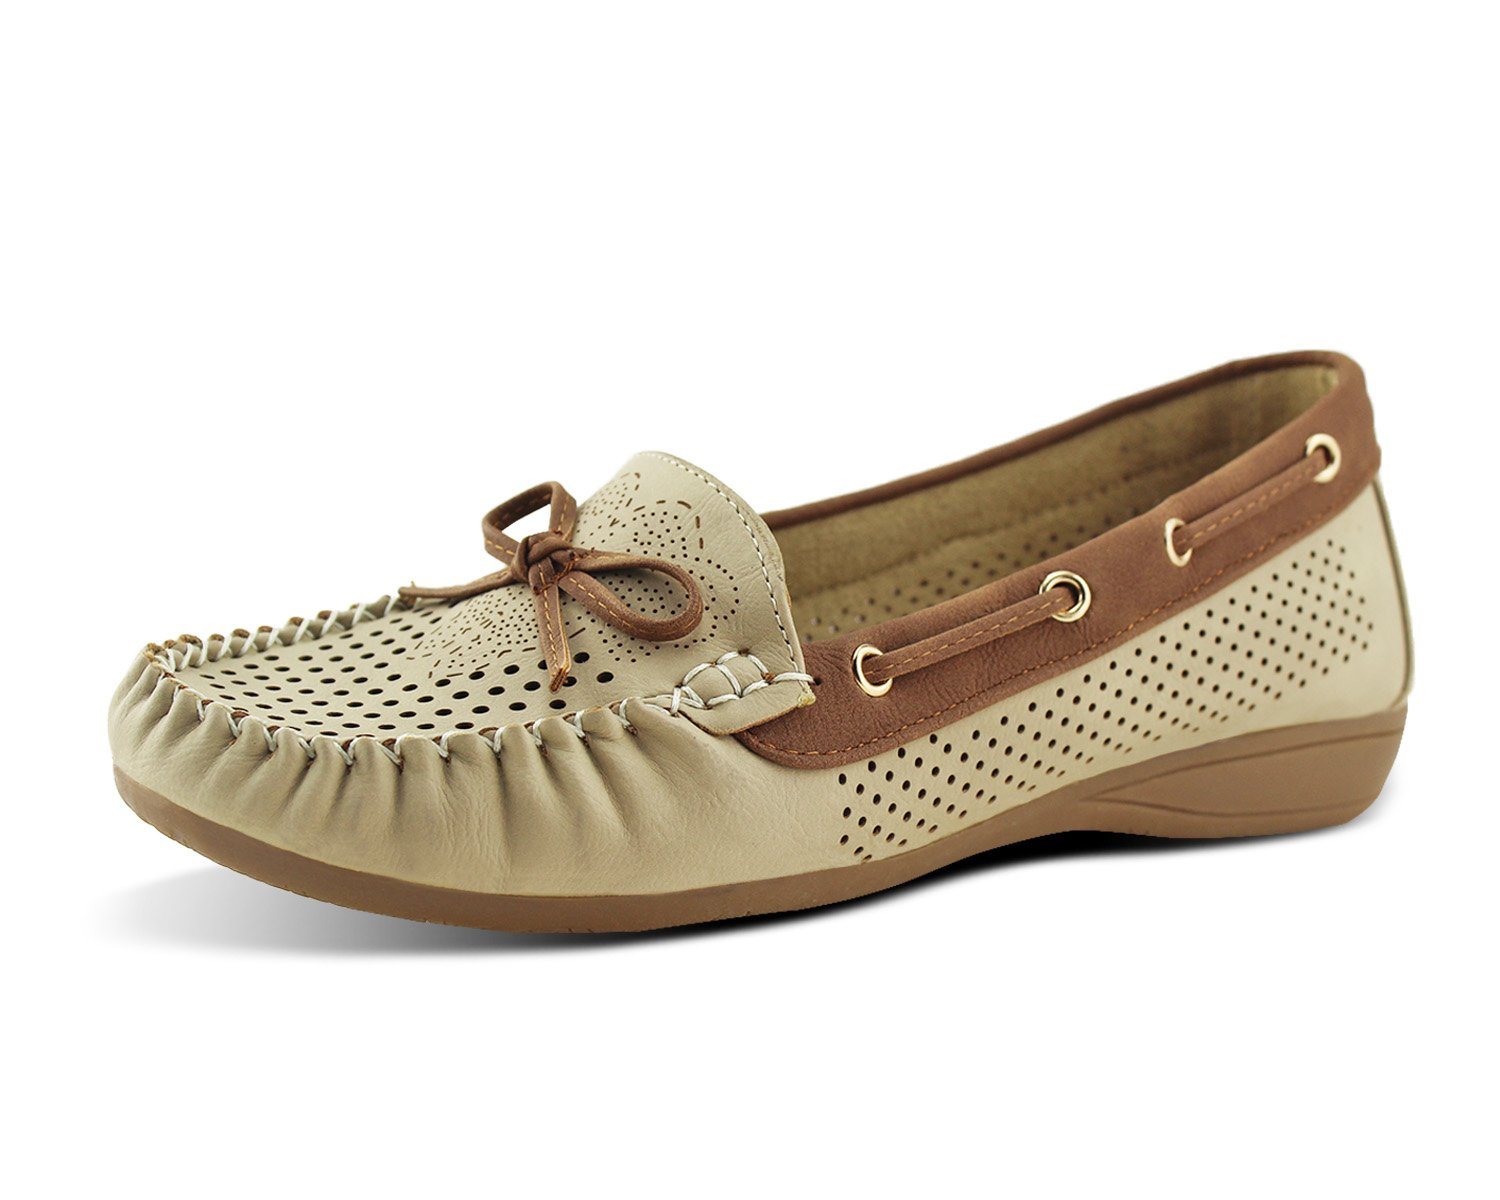 Jabasic Lady Comfort Slip-on Loafers Hollow Driving Flat Shoes(9,Beige-1)